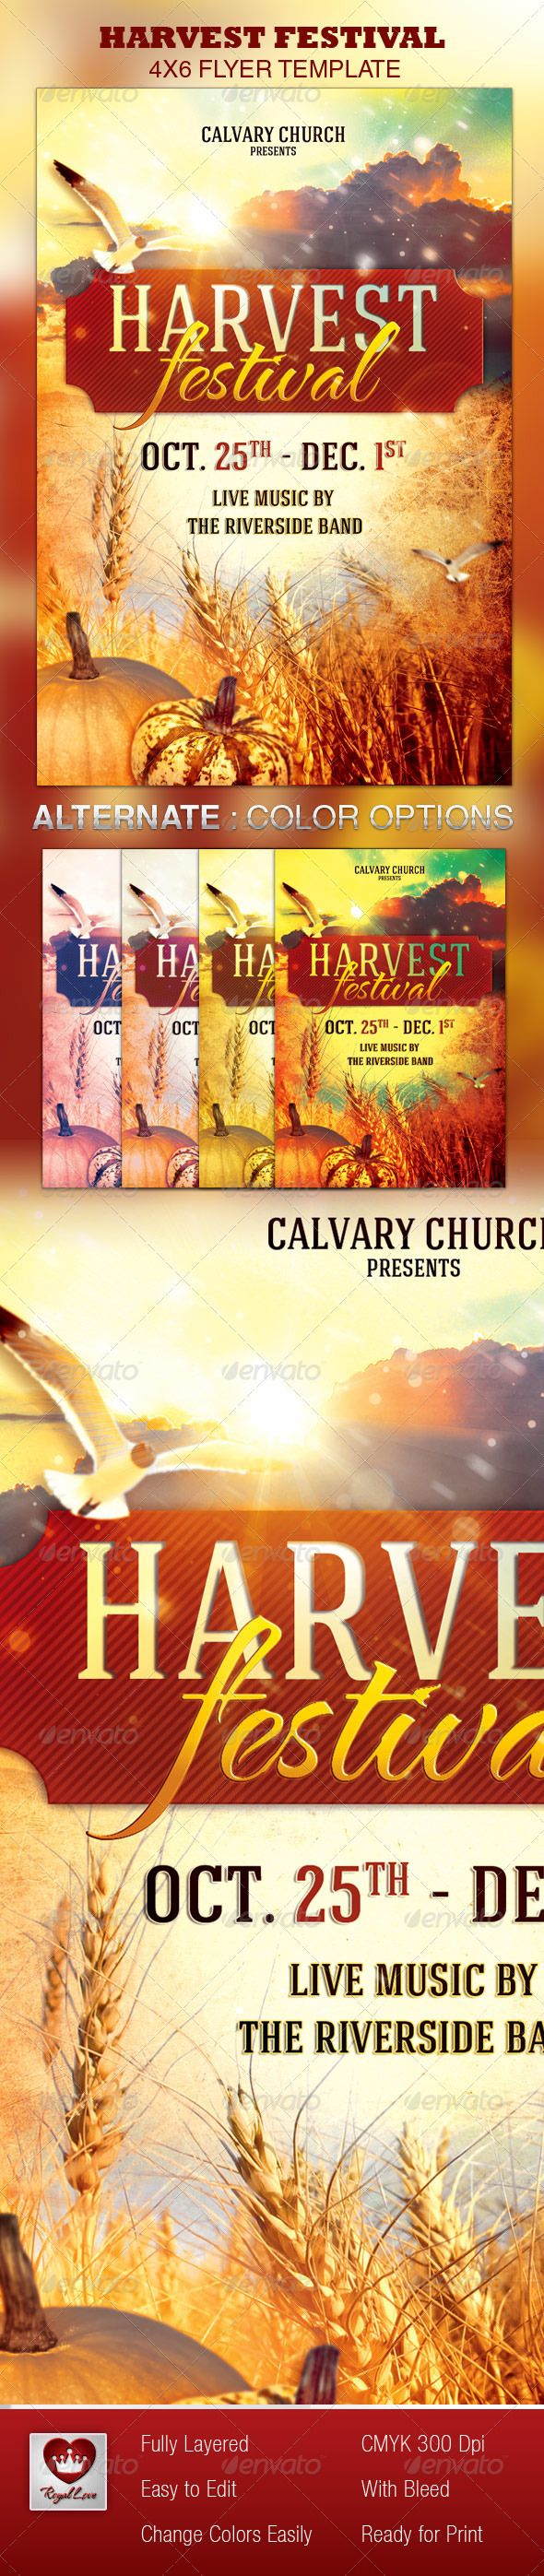 harvest festival church flyer template the flyer festivals and harvest festival church flyer template 6 00